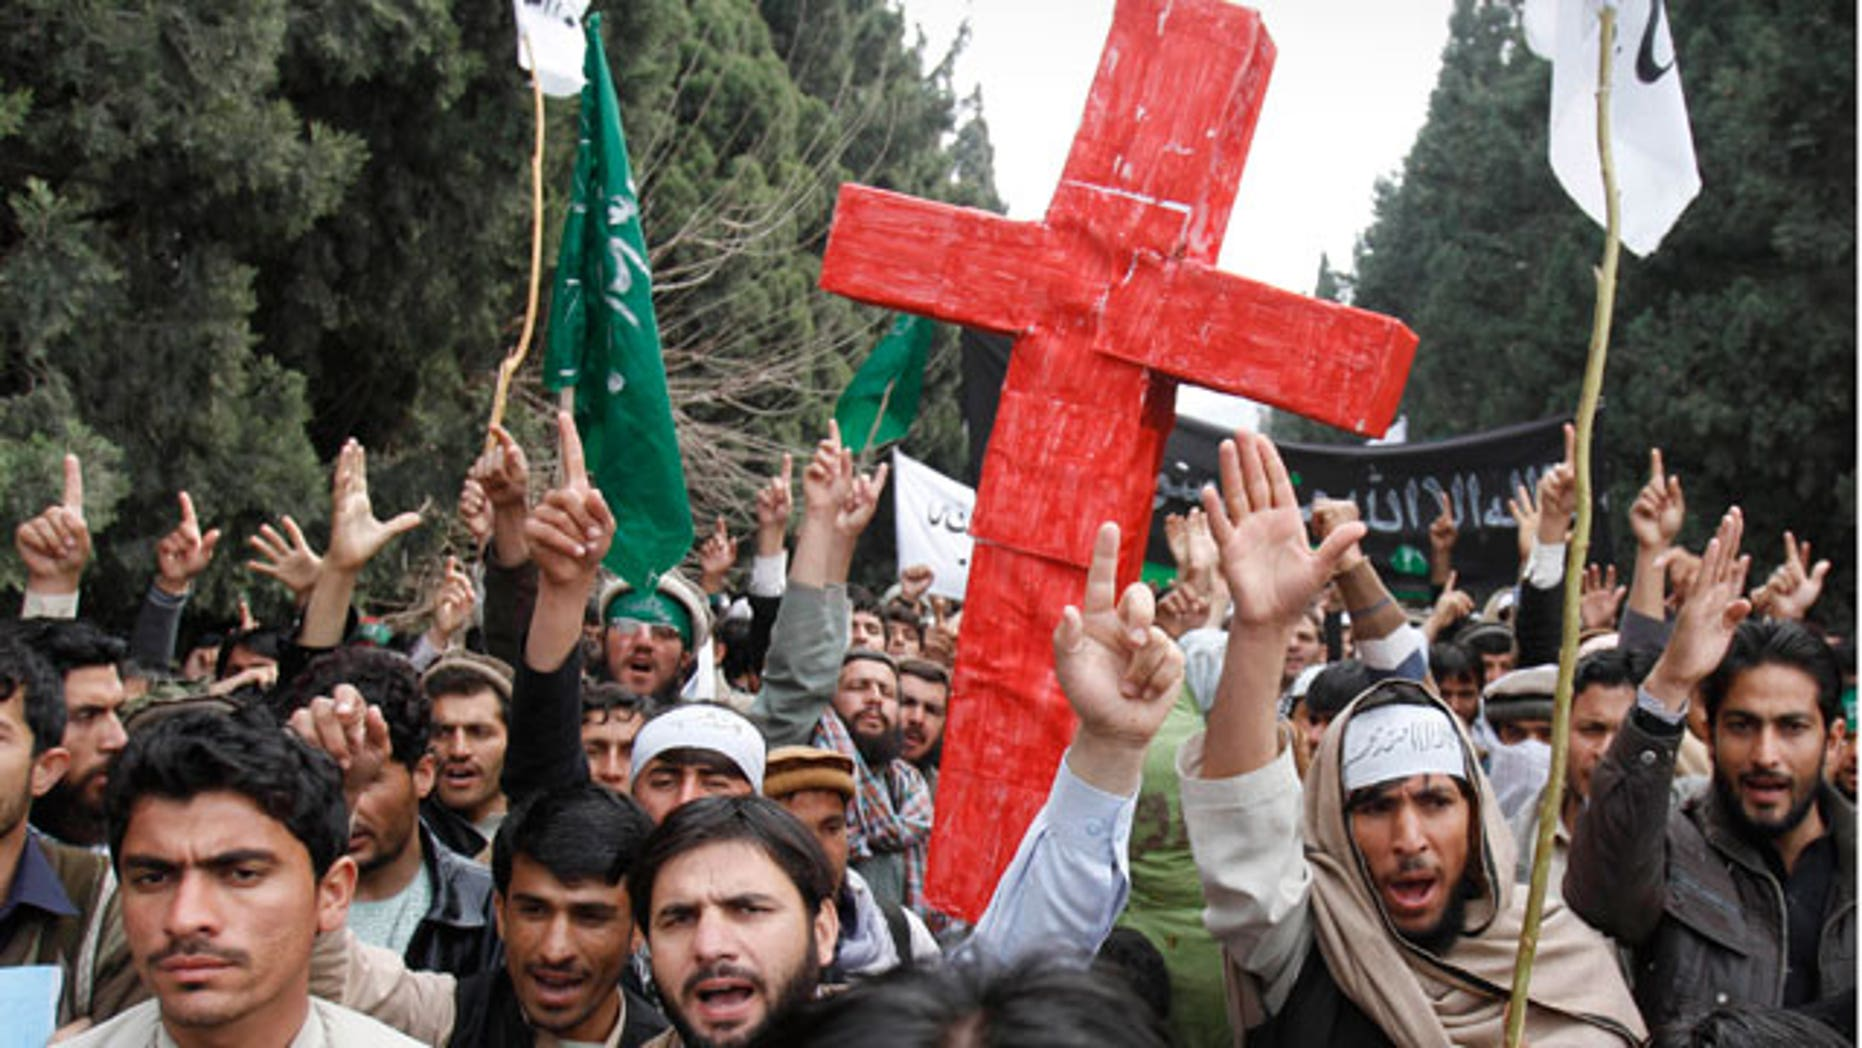 Mar. 13, 2012: Demonstrators chant anti U.S. slogans as they carry a red cross following Sunday's killing of civilians in Panjwai, Kandahar by a U.S. soldier during a protest in Jalalabad east of Kabul, Afghanistan.